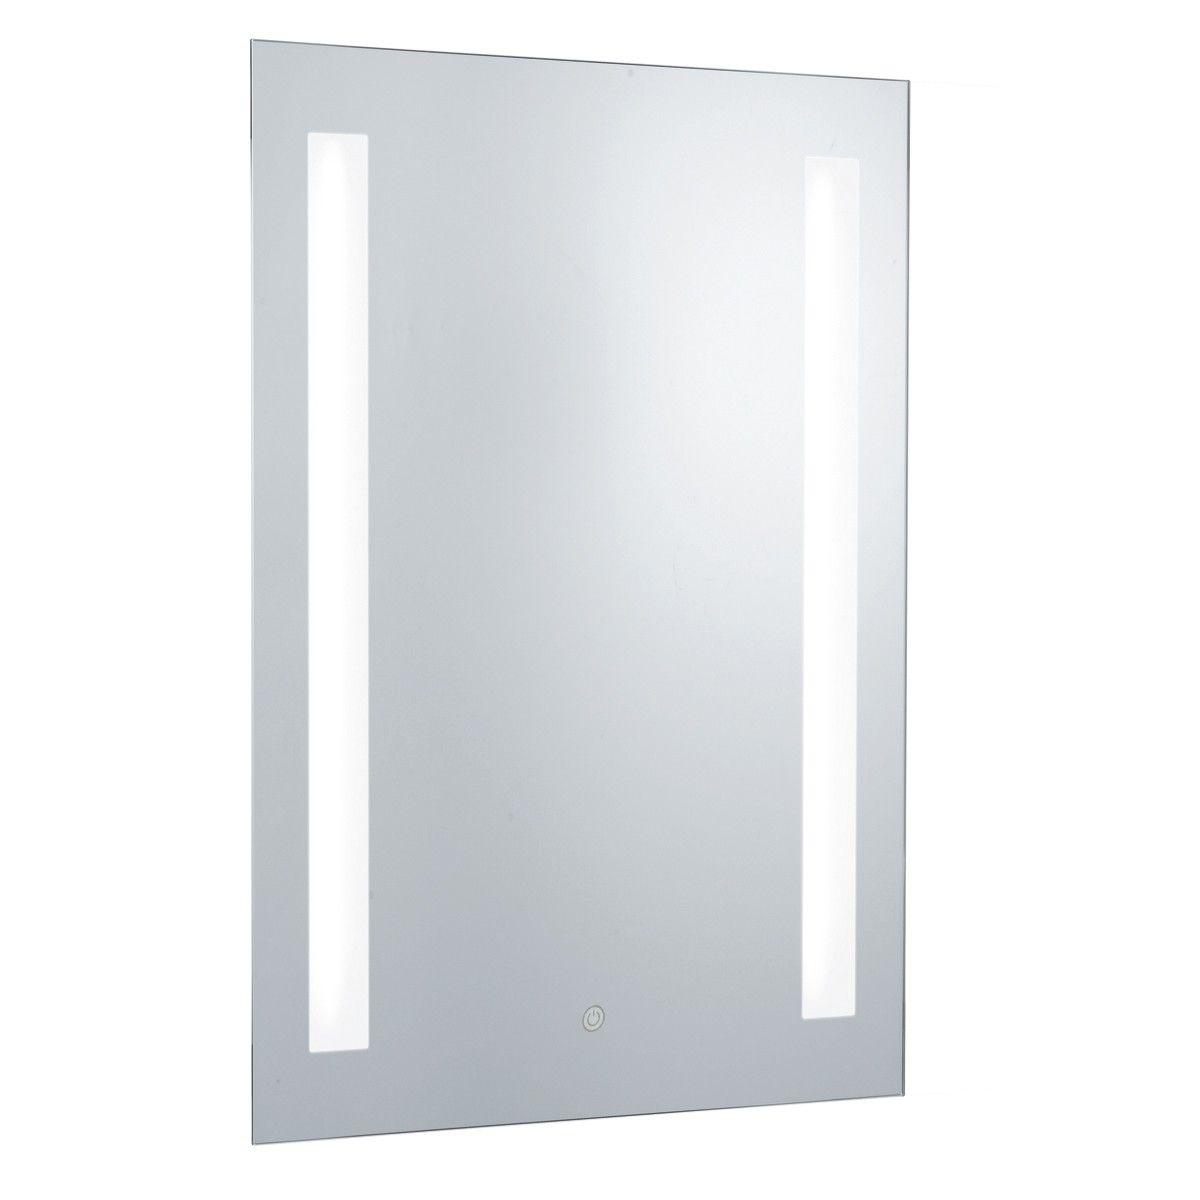 Shaver mirror lights for bathrooms - Searchlight 7450 Illuminated 2 Light Touch Bathroom Mirror Shaver Socket From Dushka Ltd London Uk